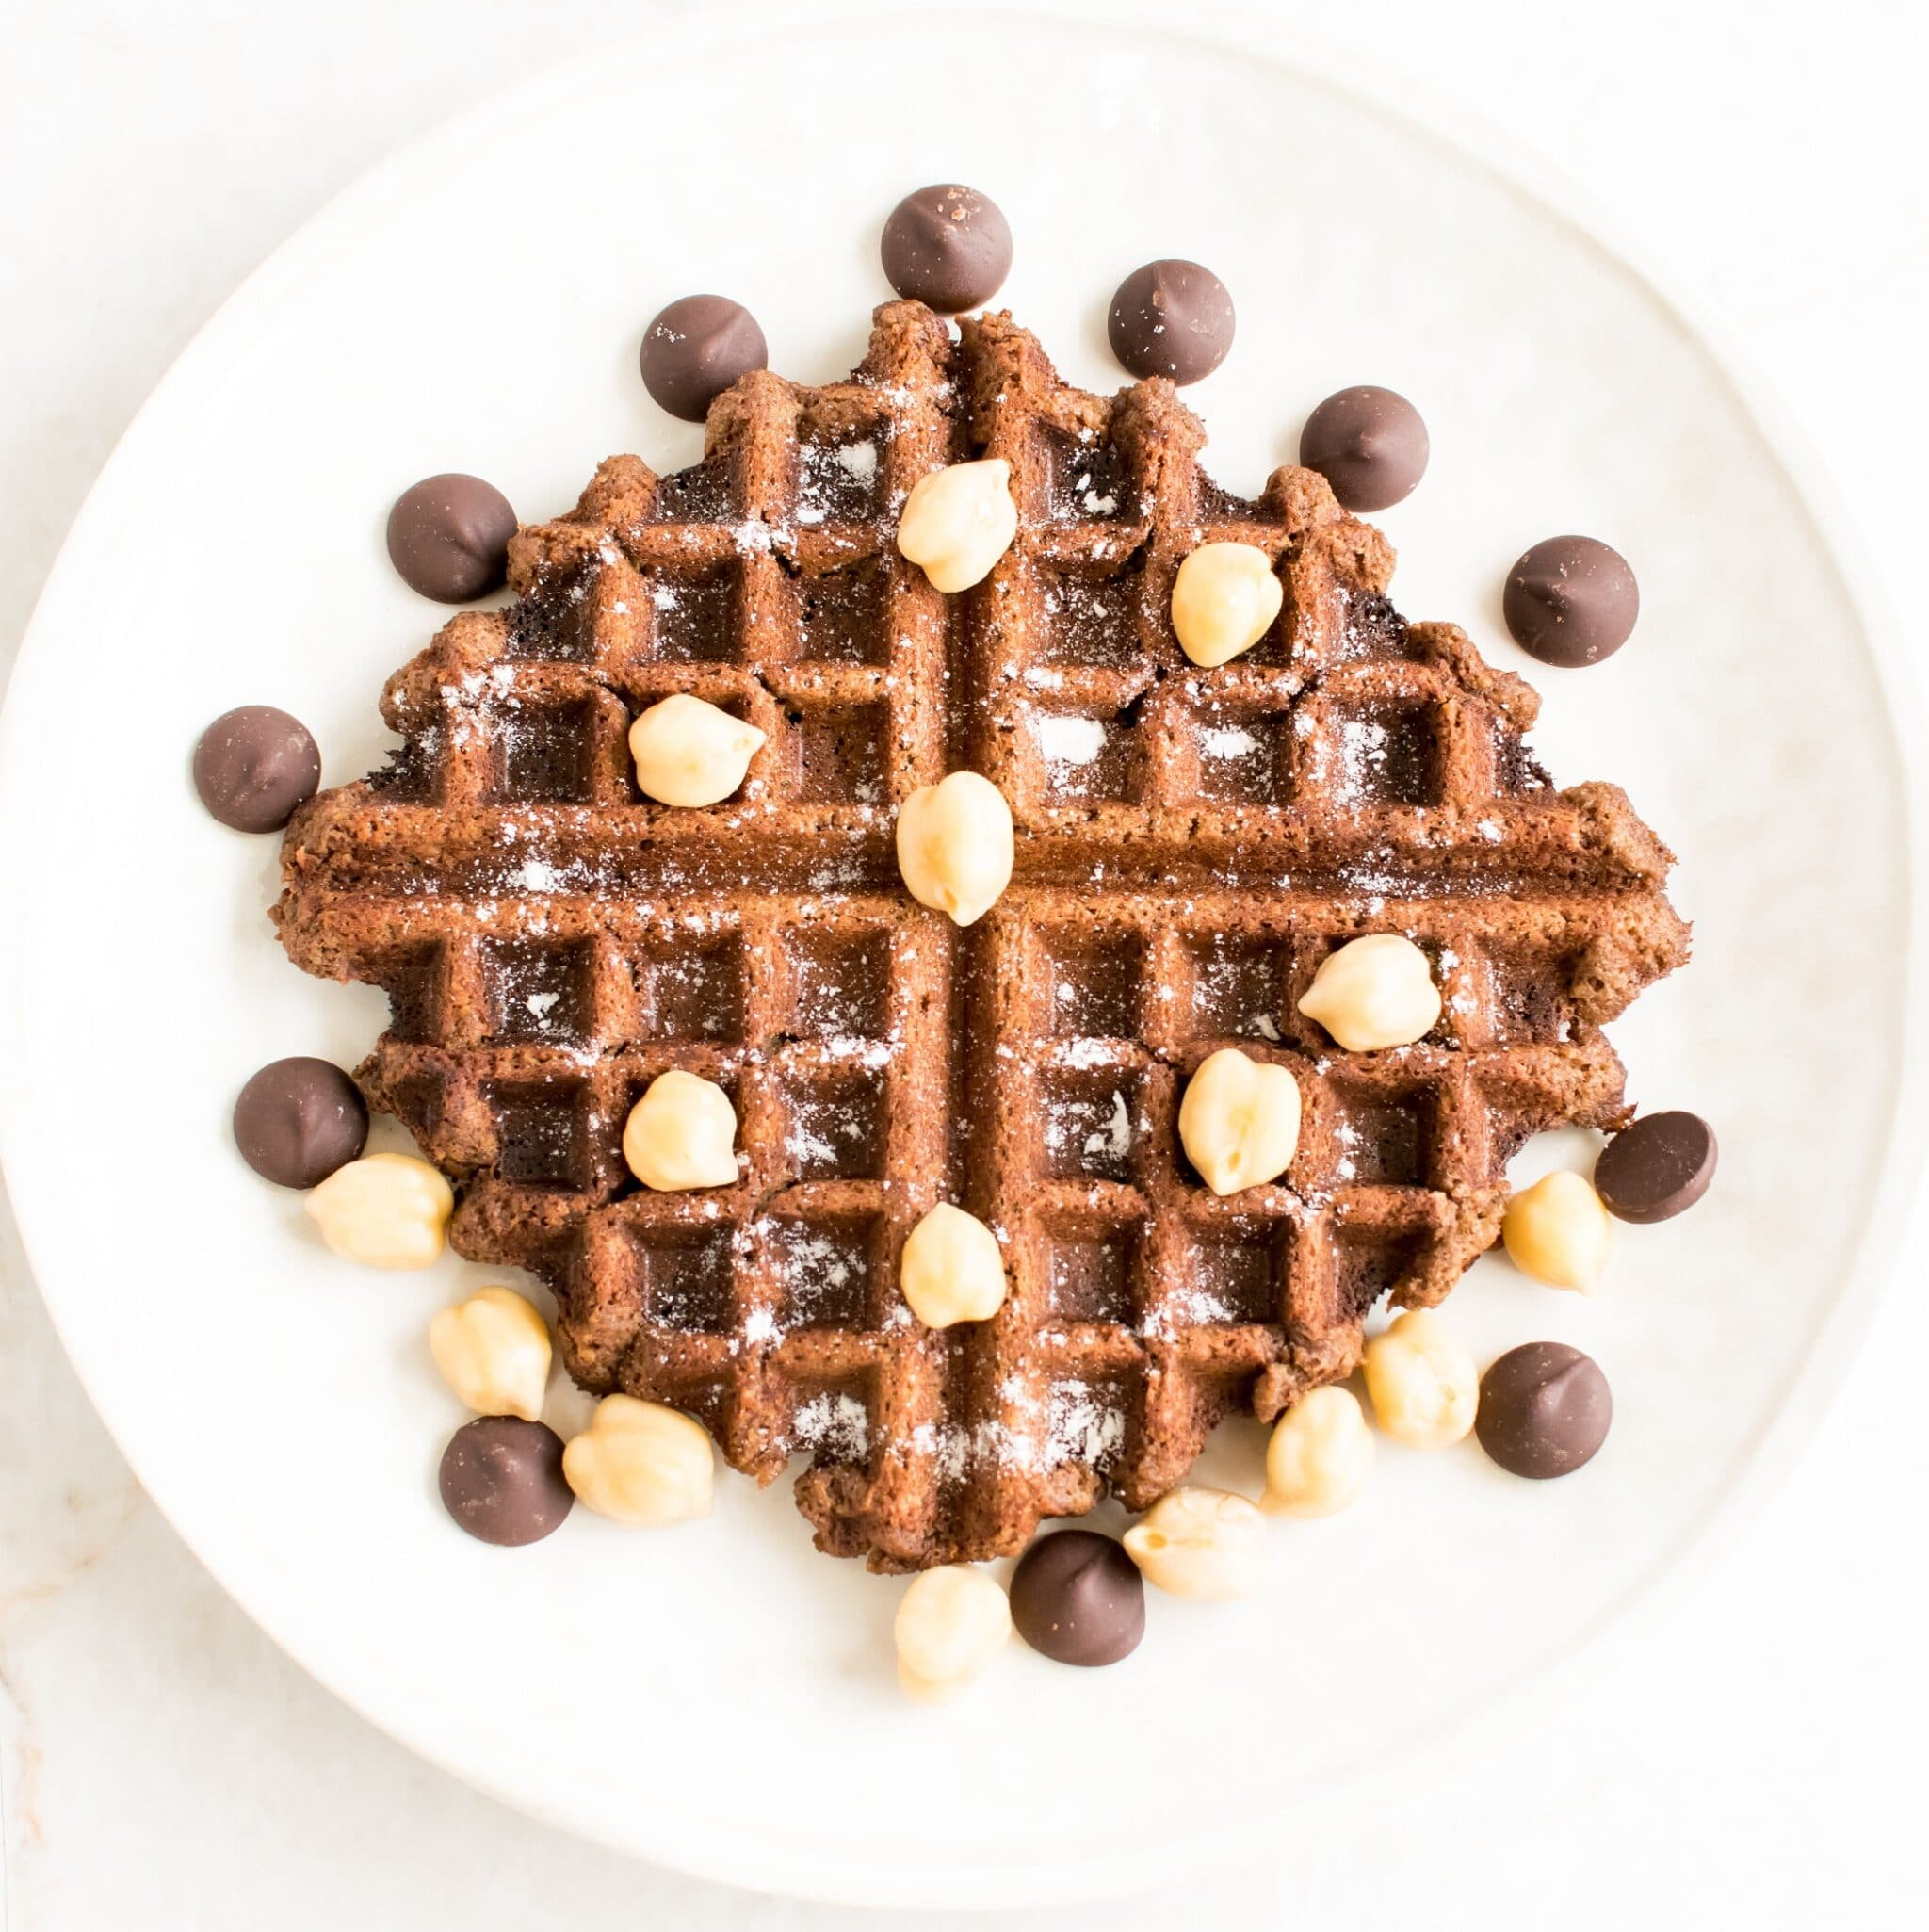 Top view of Chocolate Hummus Waffles